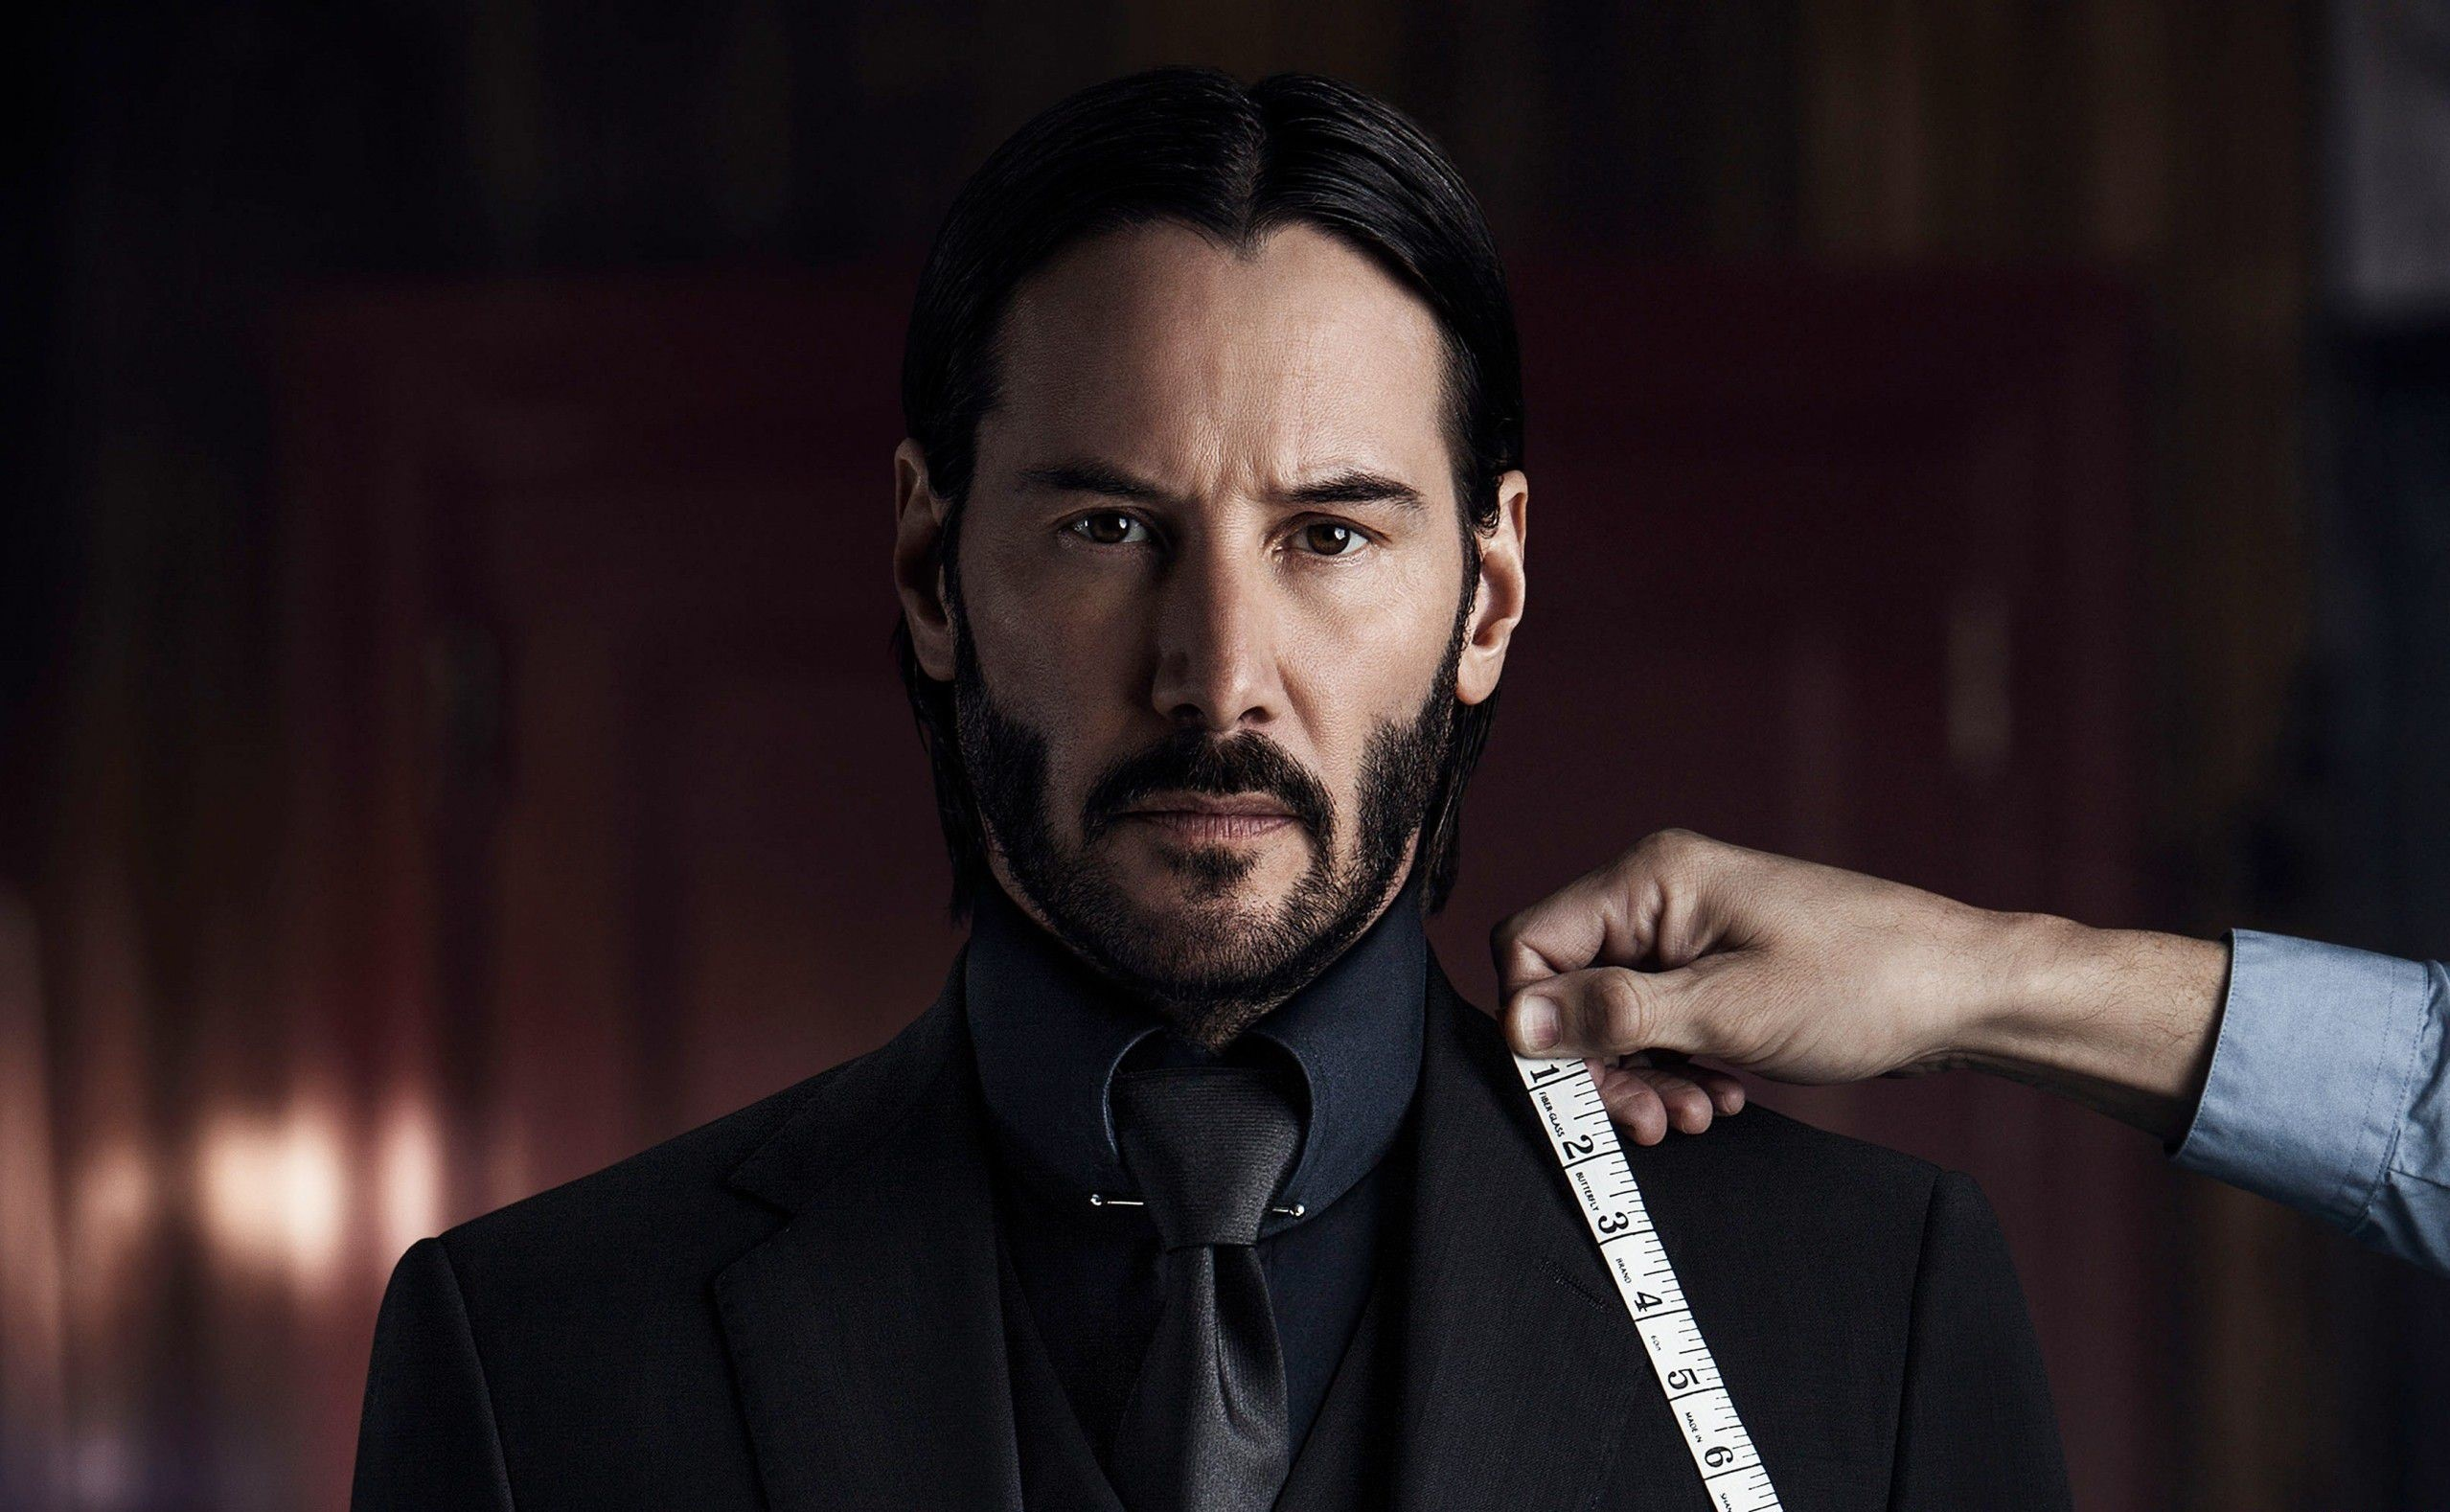 Keanu Reeves Wallpapers for Computer